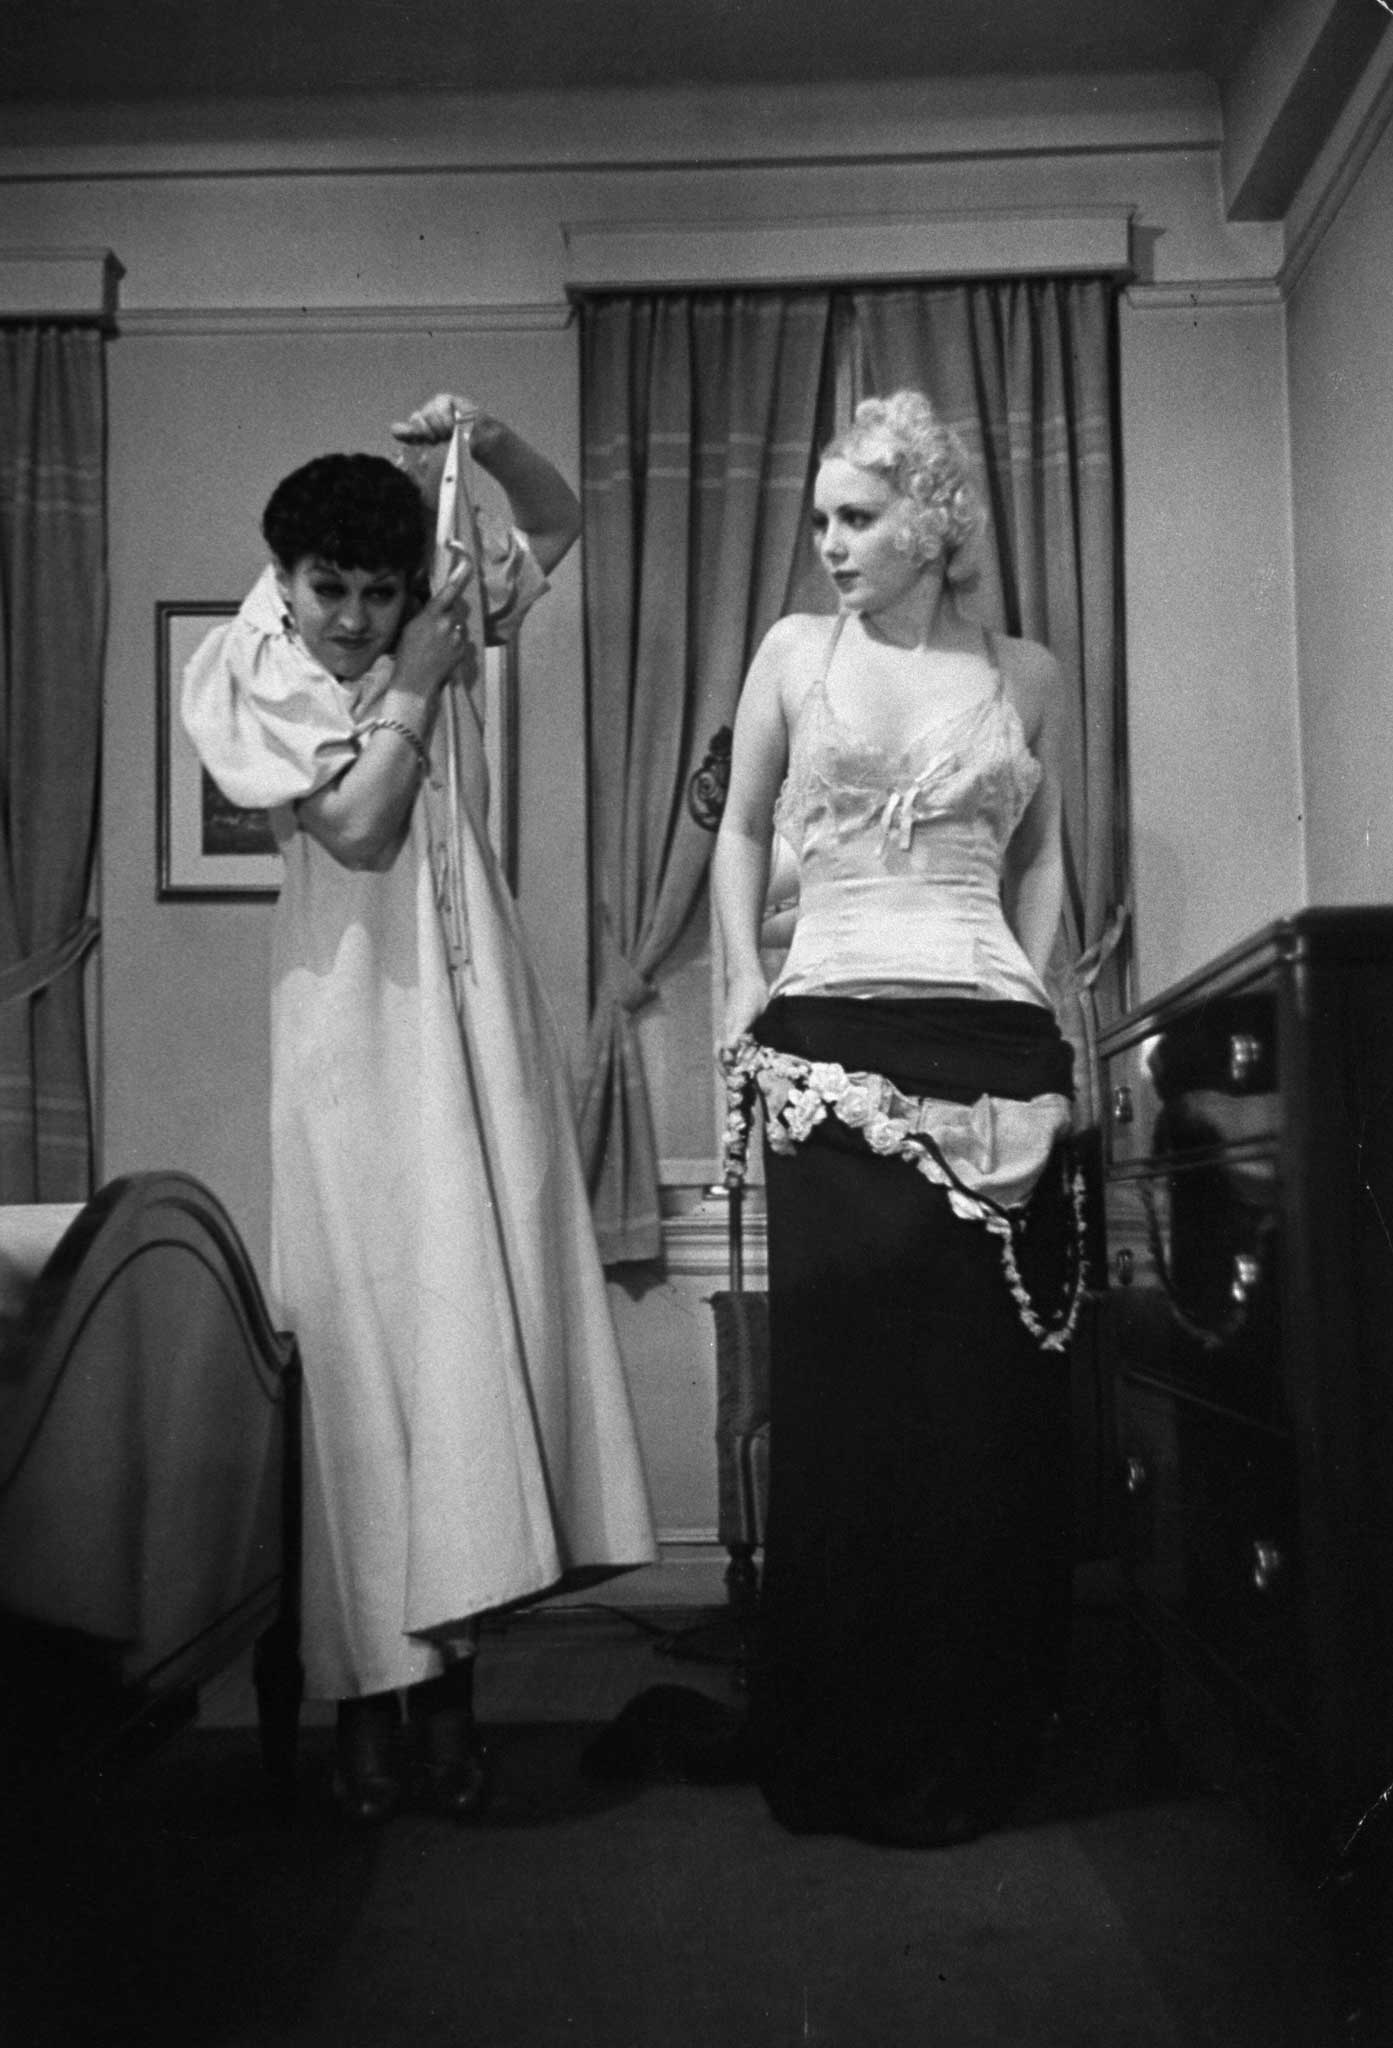 Burlesque star June St. Clair and Professor Connie Fonzlau demonstrate the right and wrong ways to disrobe at the Allen Gilbert School of Undressing in New York, 1937.